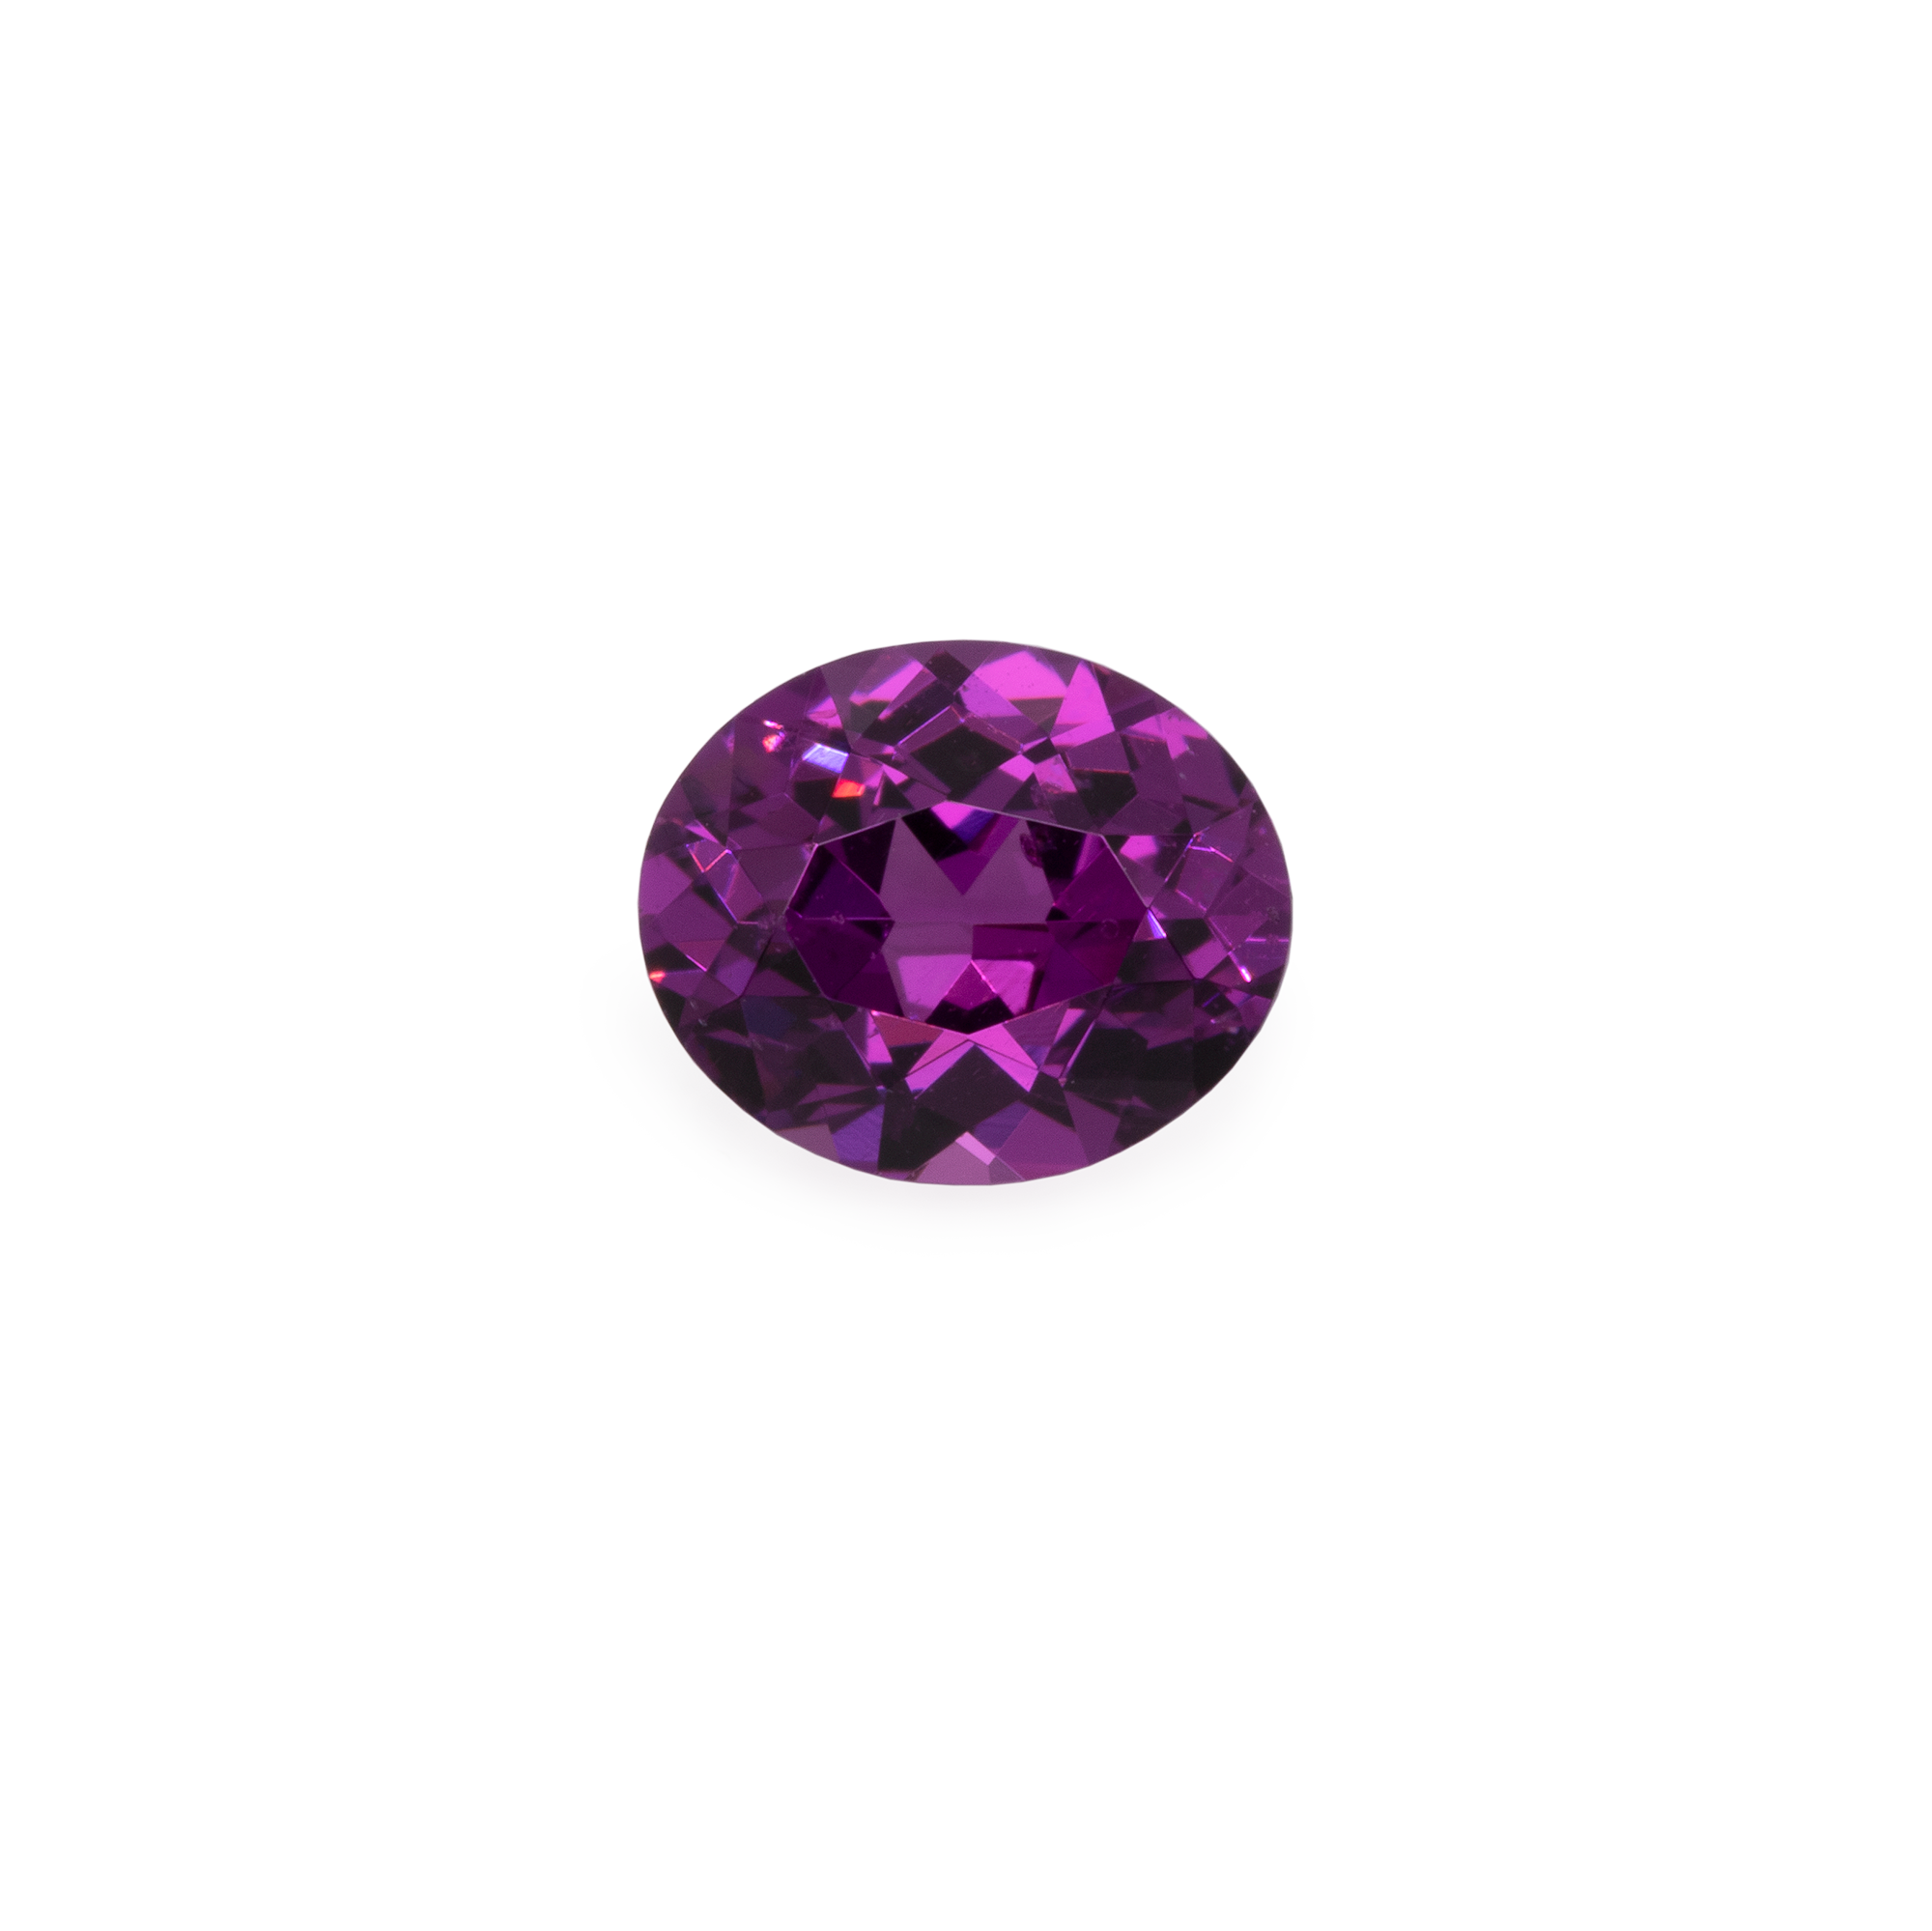 Royal Purple Garnet - lila, oval, 6x5 mm,  0,67-0,82 cts, Nr. RP15001